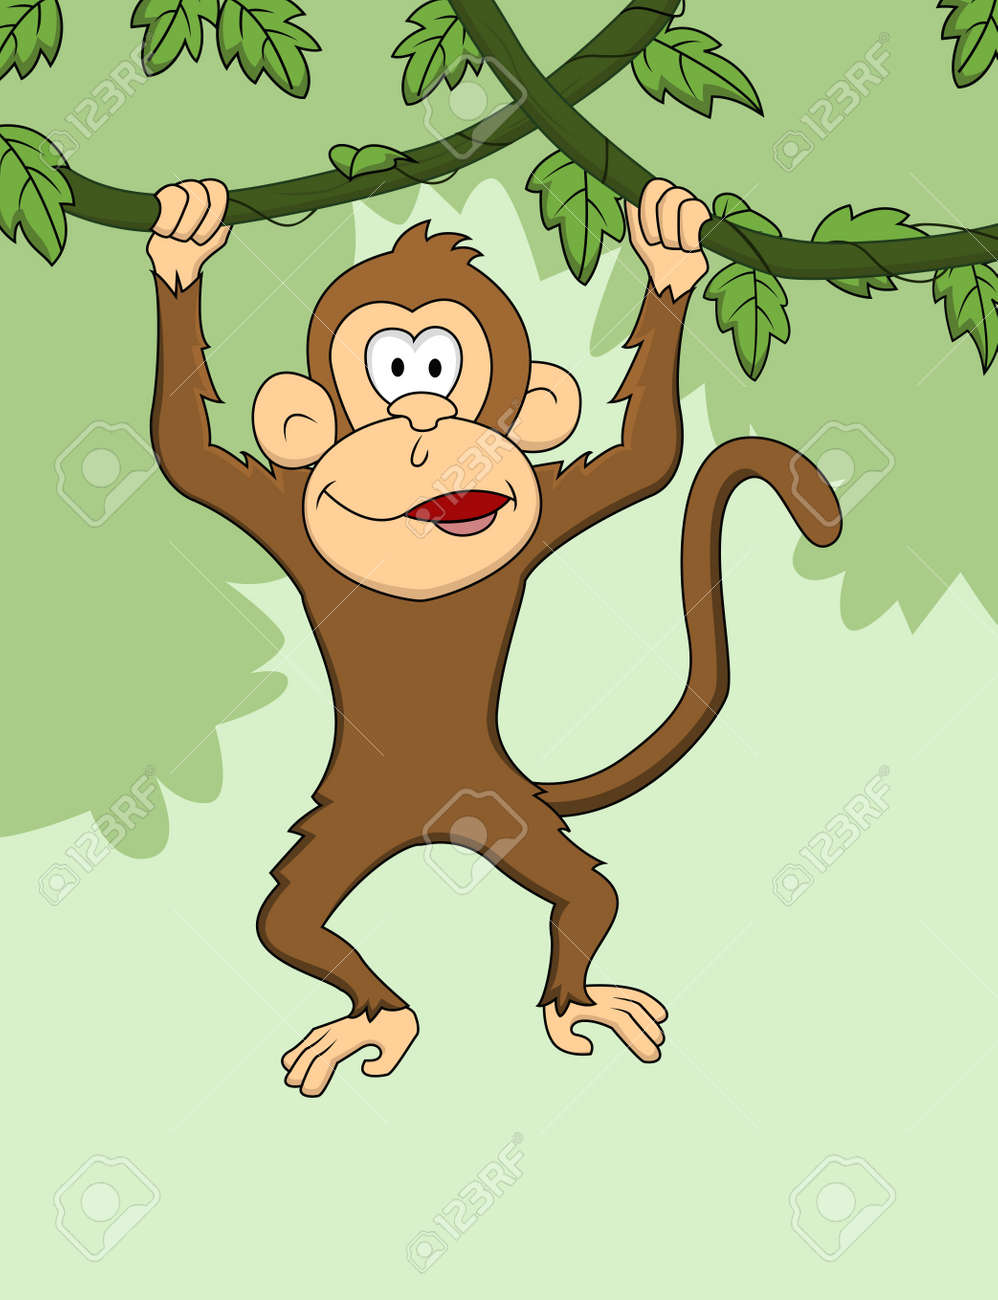 Images for simple cartoon monkey hanging - Monkey Cartoon Hanging Stock Vector 13778825